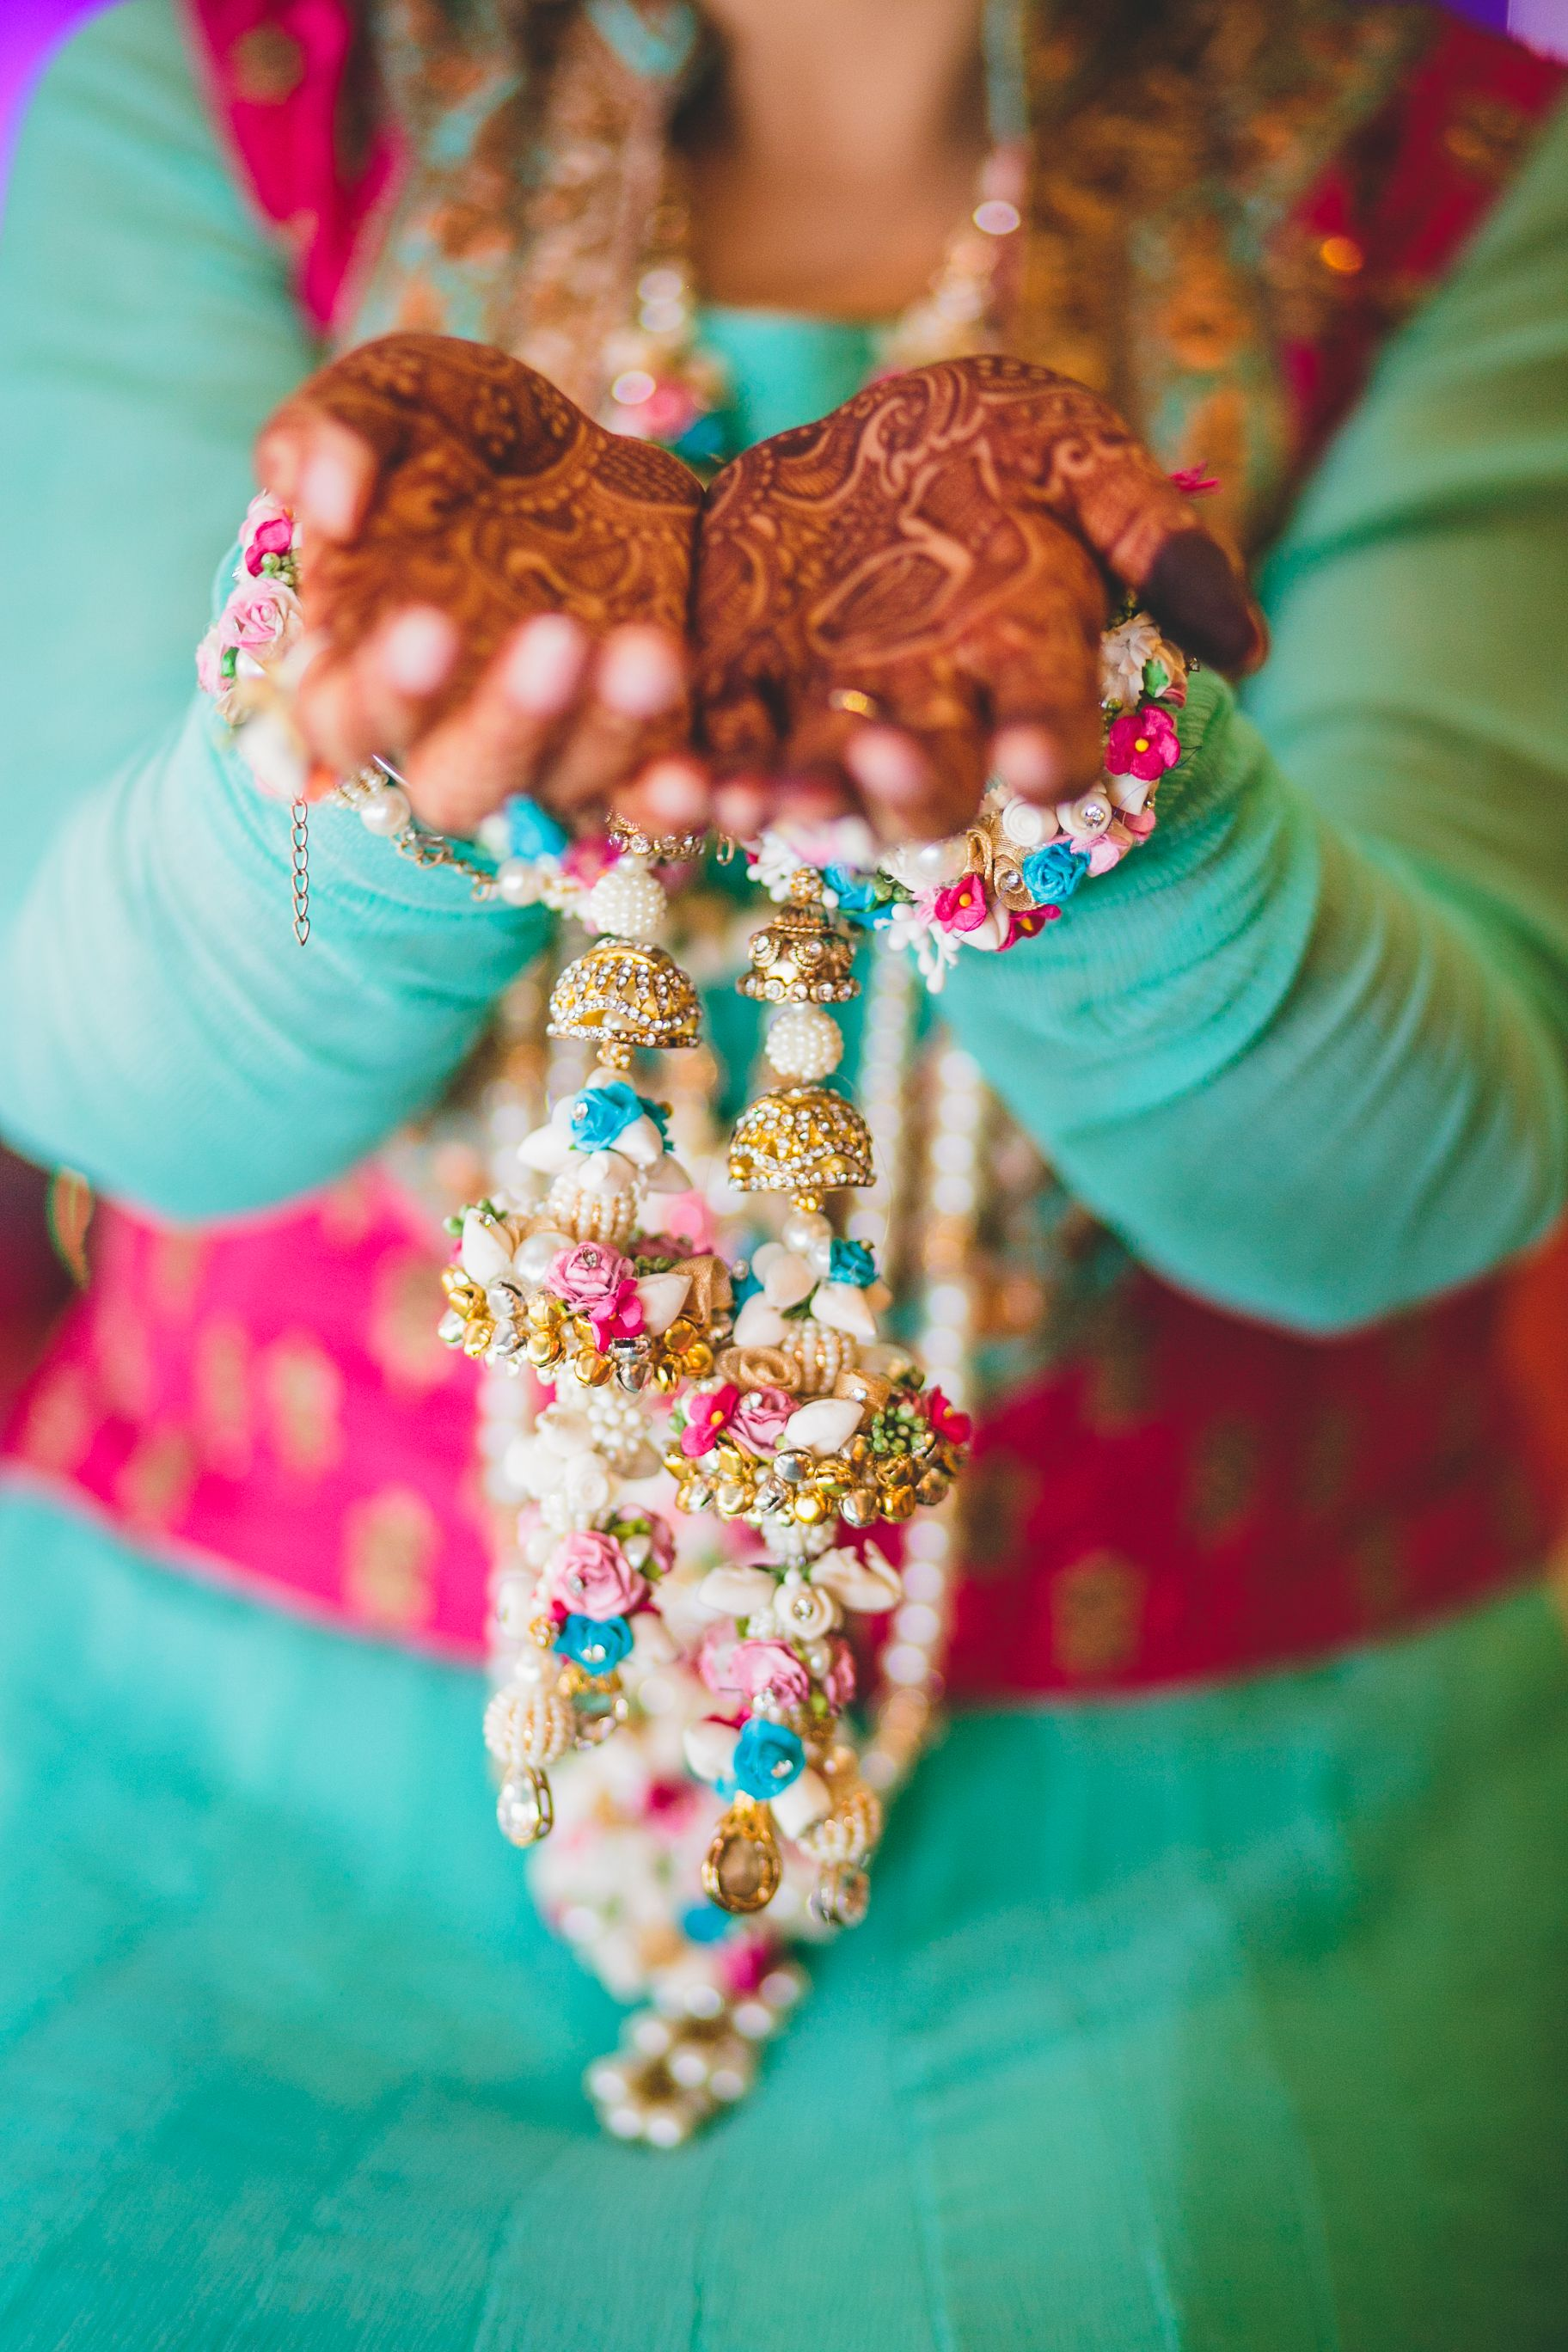 Summery cool and a perfect color pop mehandi day look inspiration. #photozaapki #weddingphotography #indiabrides #allthingsbridal #bridalblings #mehandi #flower #accessories #kaleere #bangles #summerweddings #mehandipatterns